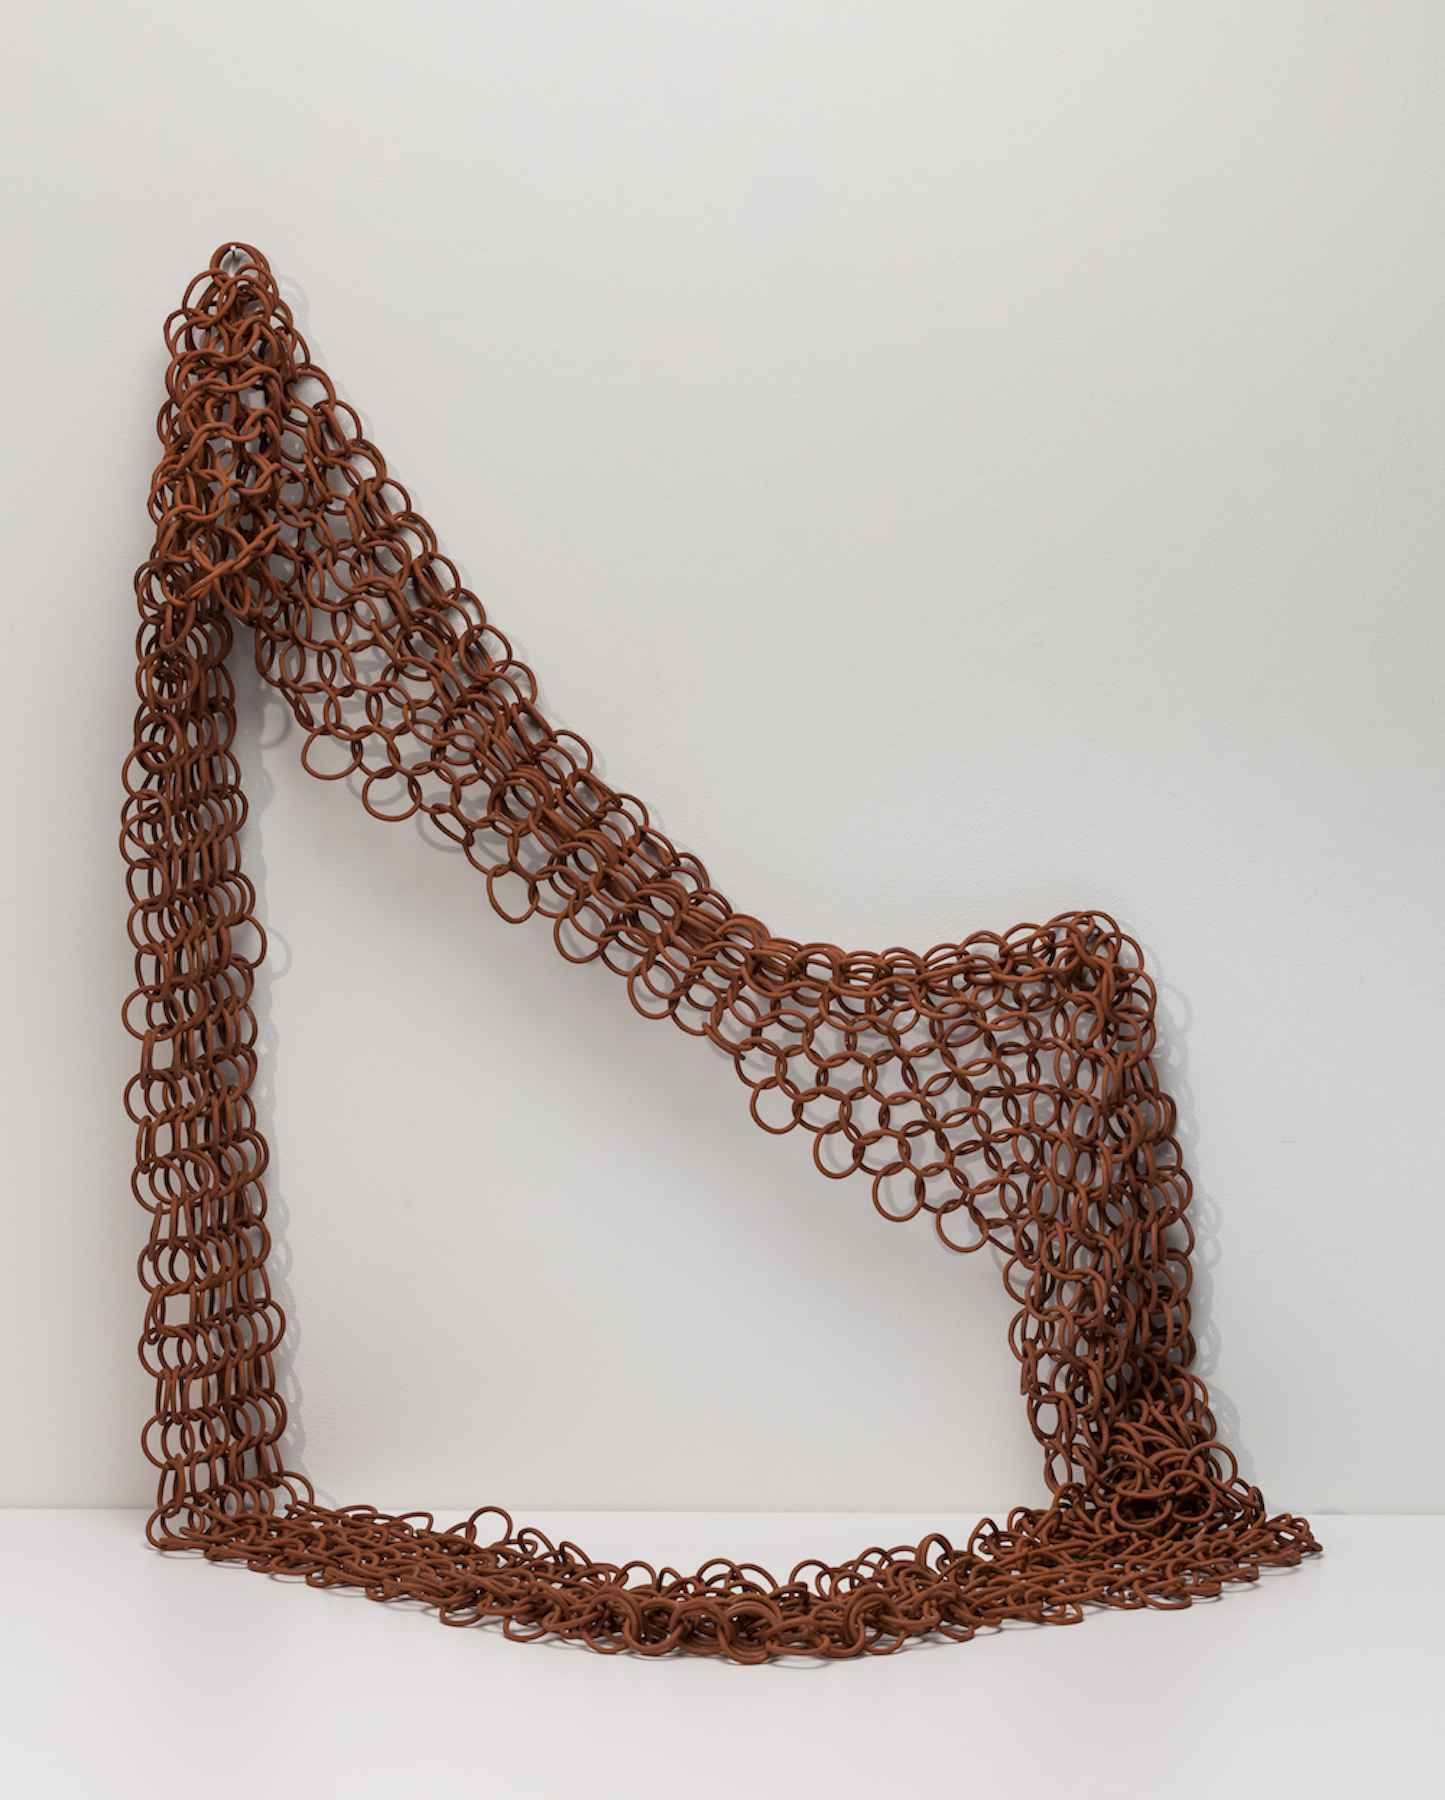 COIL by Ms. TAYLOR KIBBY - Masterpiece Online